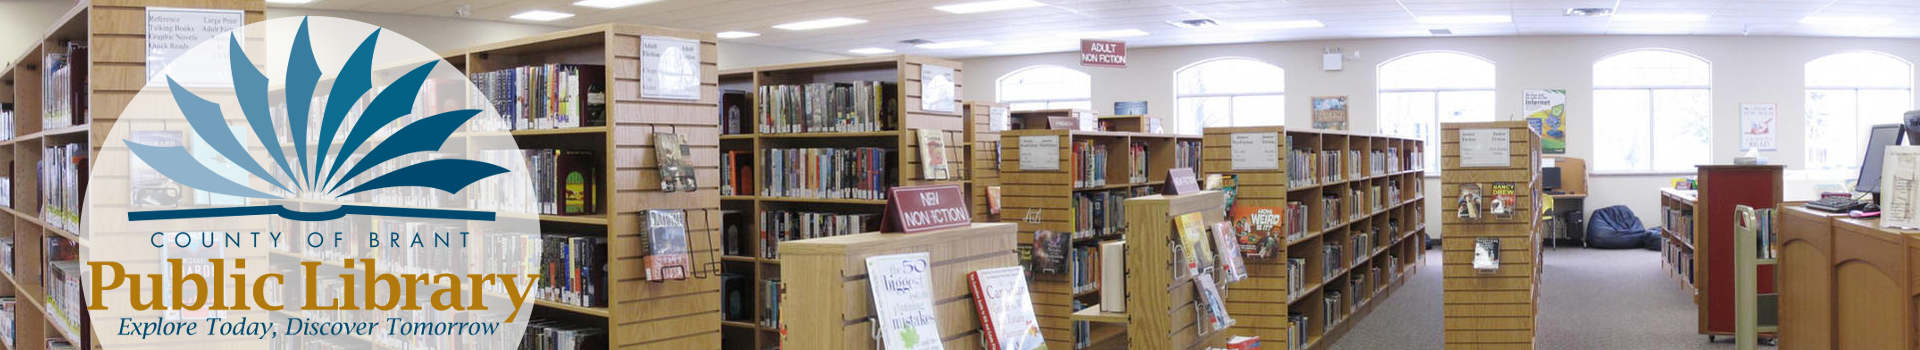 County of Brant Public Libraries